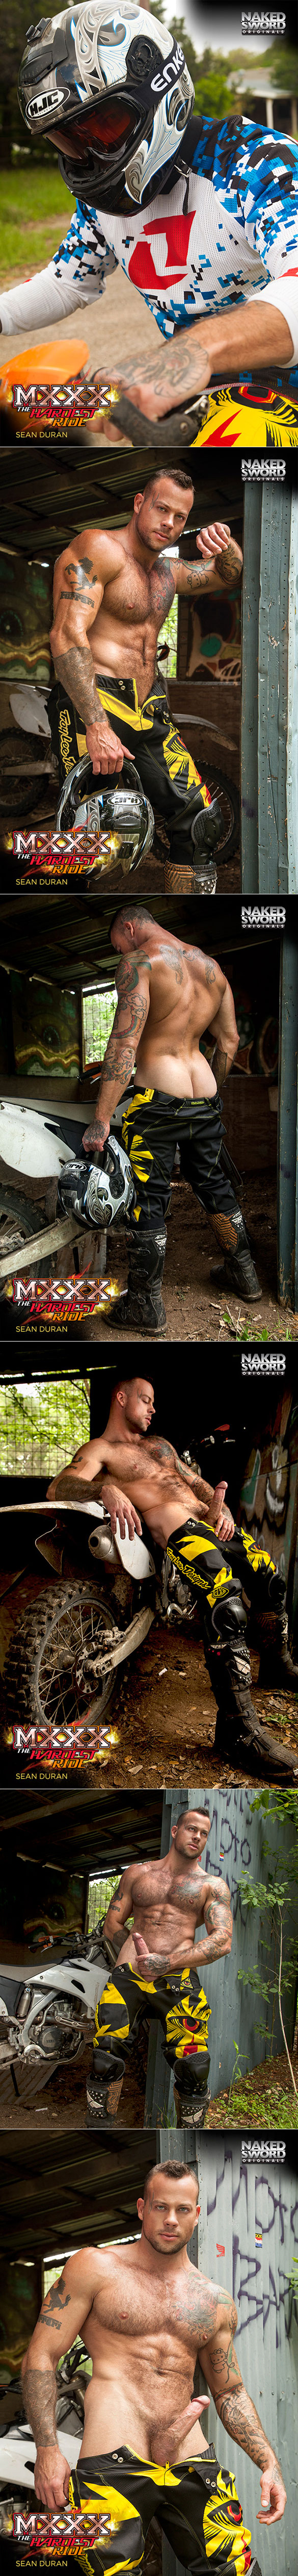 "NakedSword Originals: Tom Faulk fucks Sean Duran in ""MXXX - The Hardest Ride, Episode 1: The Bet Is On"""